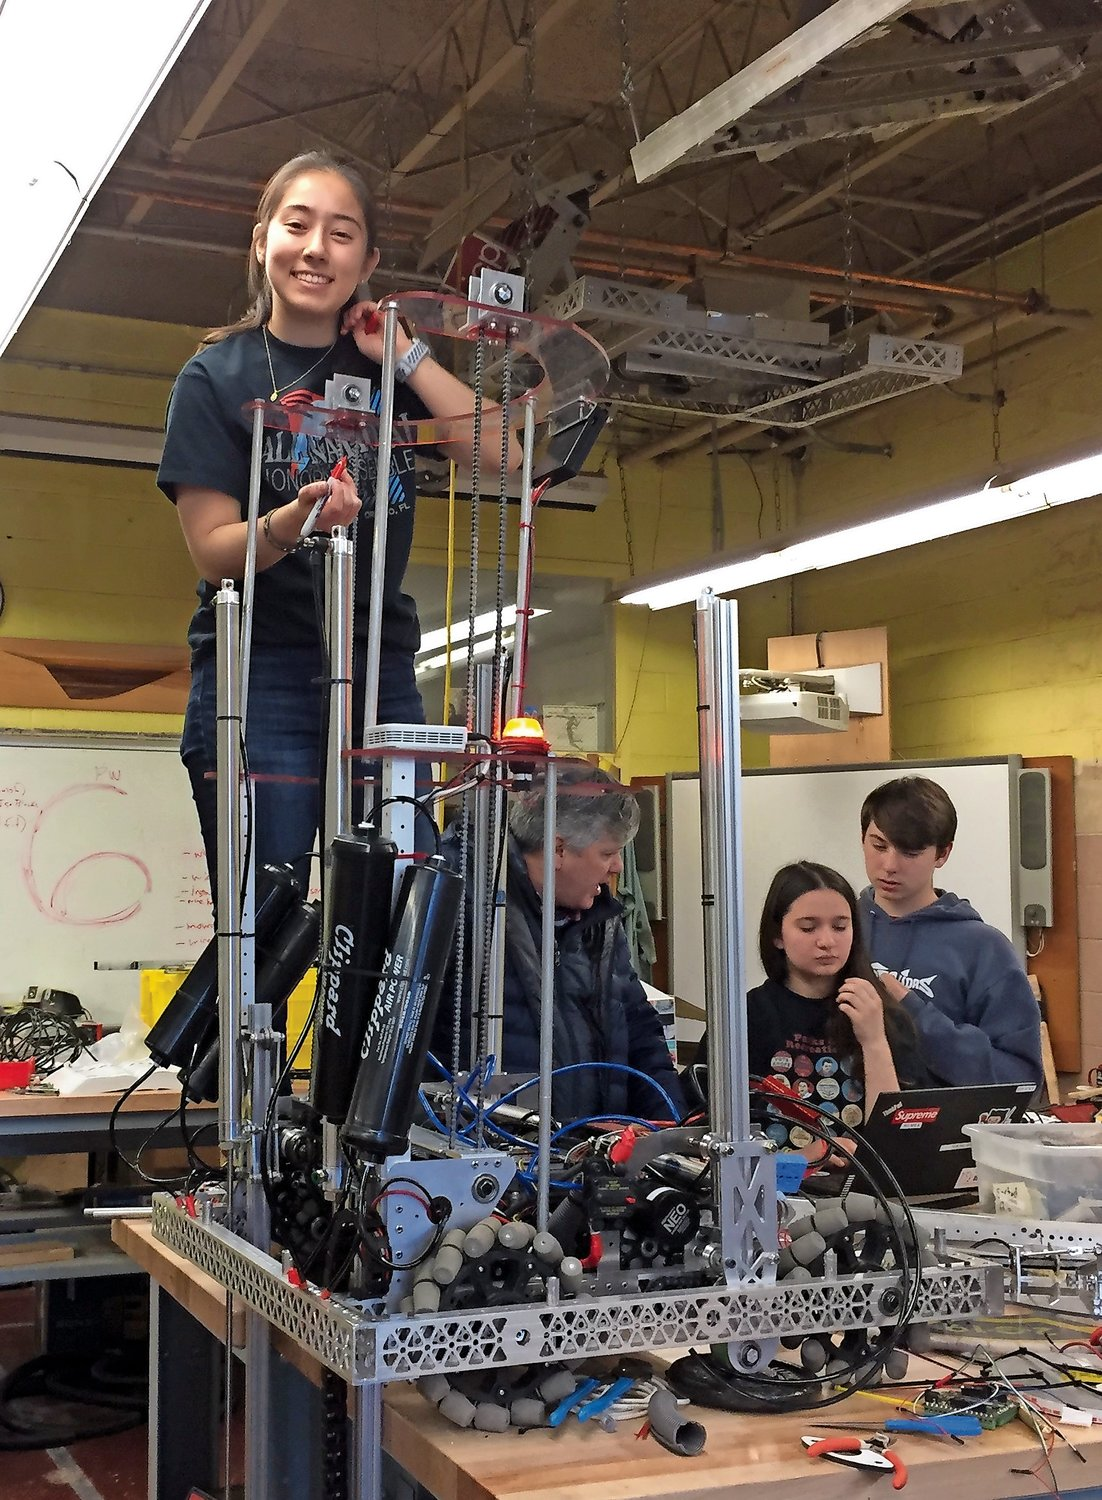 Hanah Leventhal is the president of North Shore High School's FIRST Robotics Team, RoboGym.